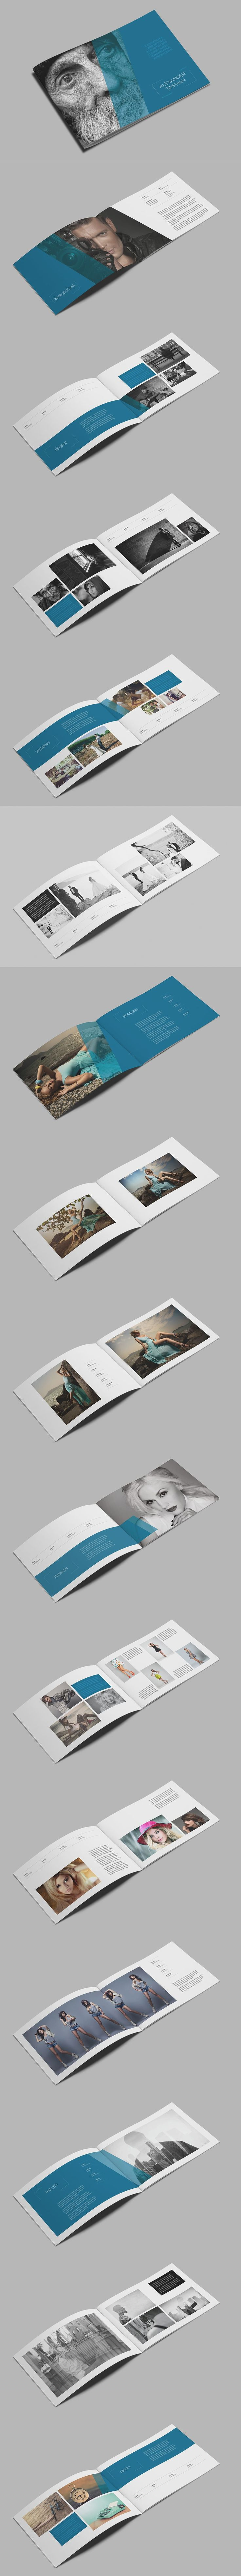 Photography Portfolio Brochure Template InDesign INDD - 36 Custom Pages